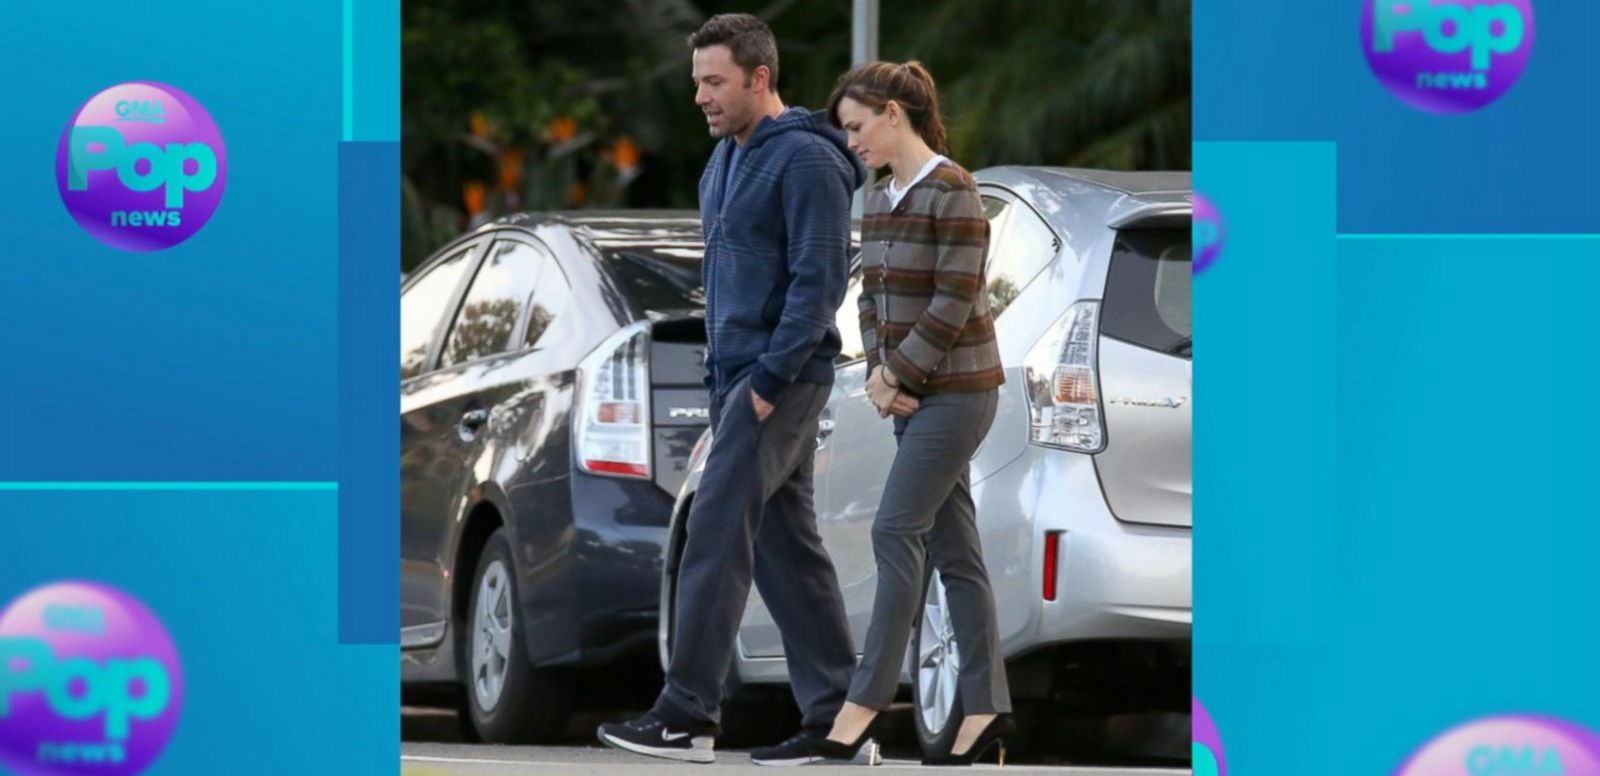 VIDEO: Ben Affleck and Jennifer Garner Reportedly Trying to 'Make it Work'